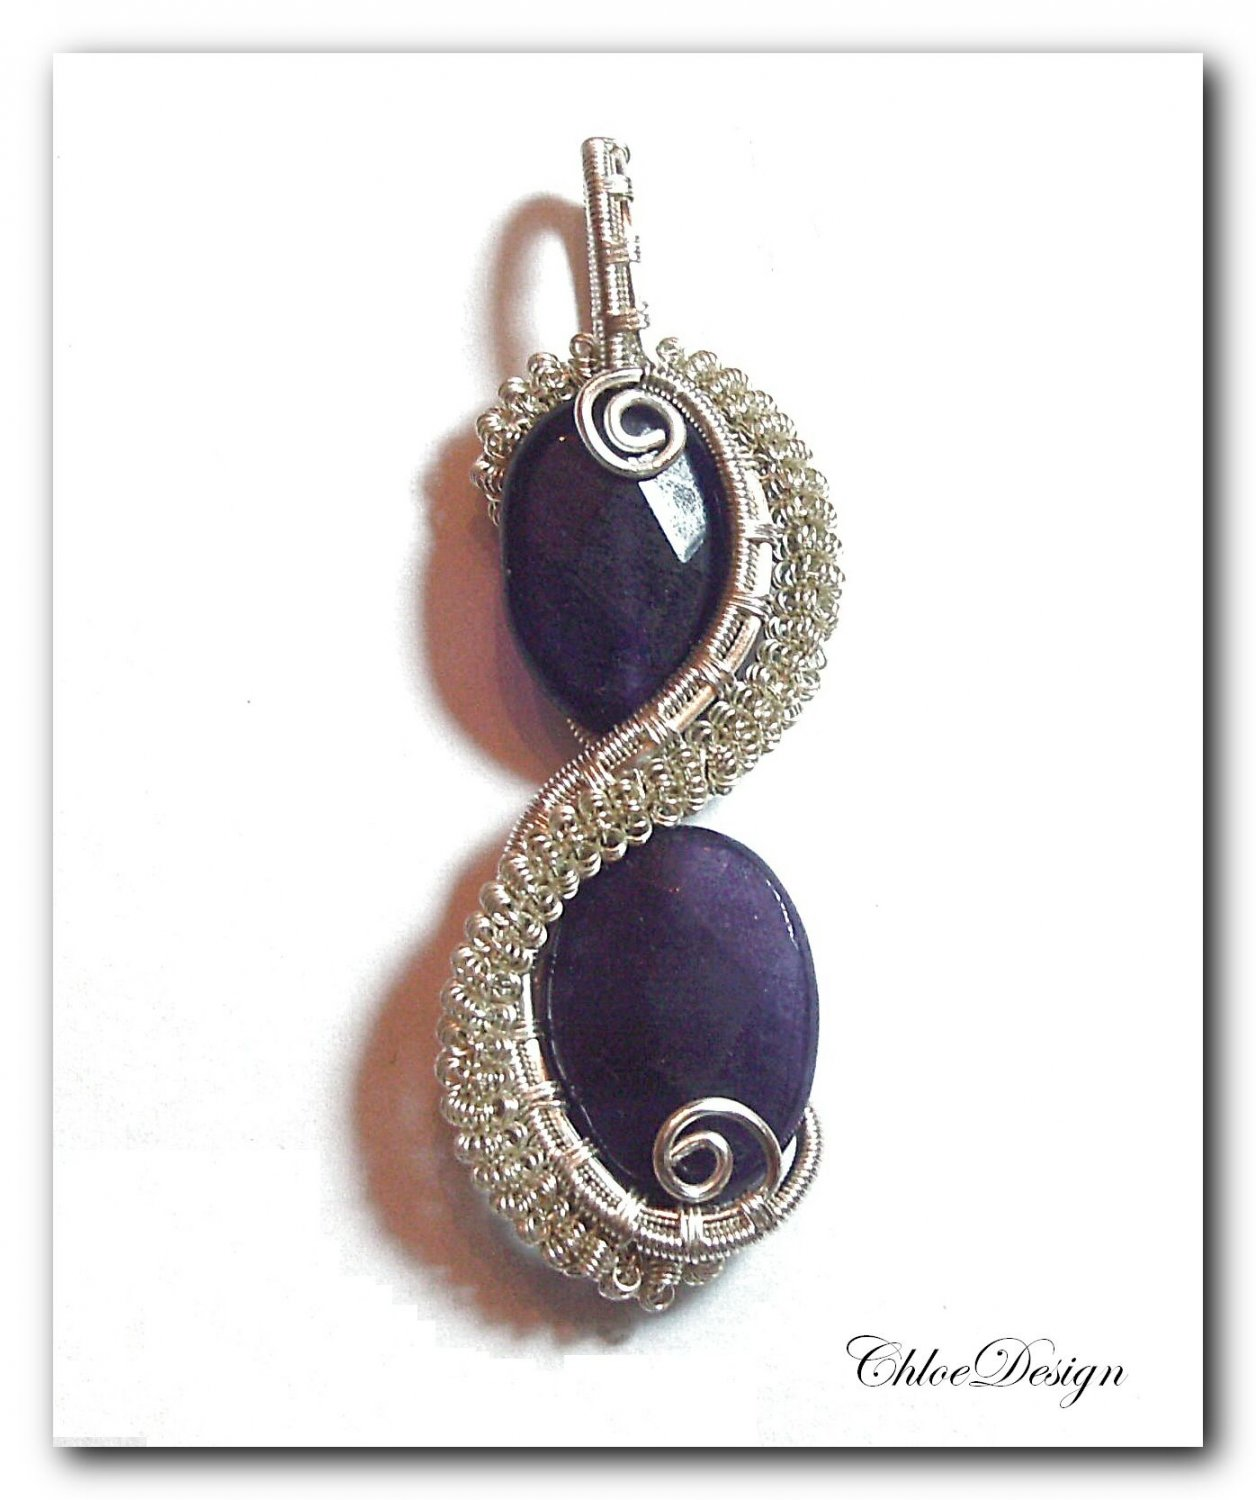 diy pdf tutorial Wire Wrapping Jewelry Amethyst Column Pendant,casual,wire,gizmo